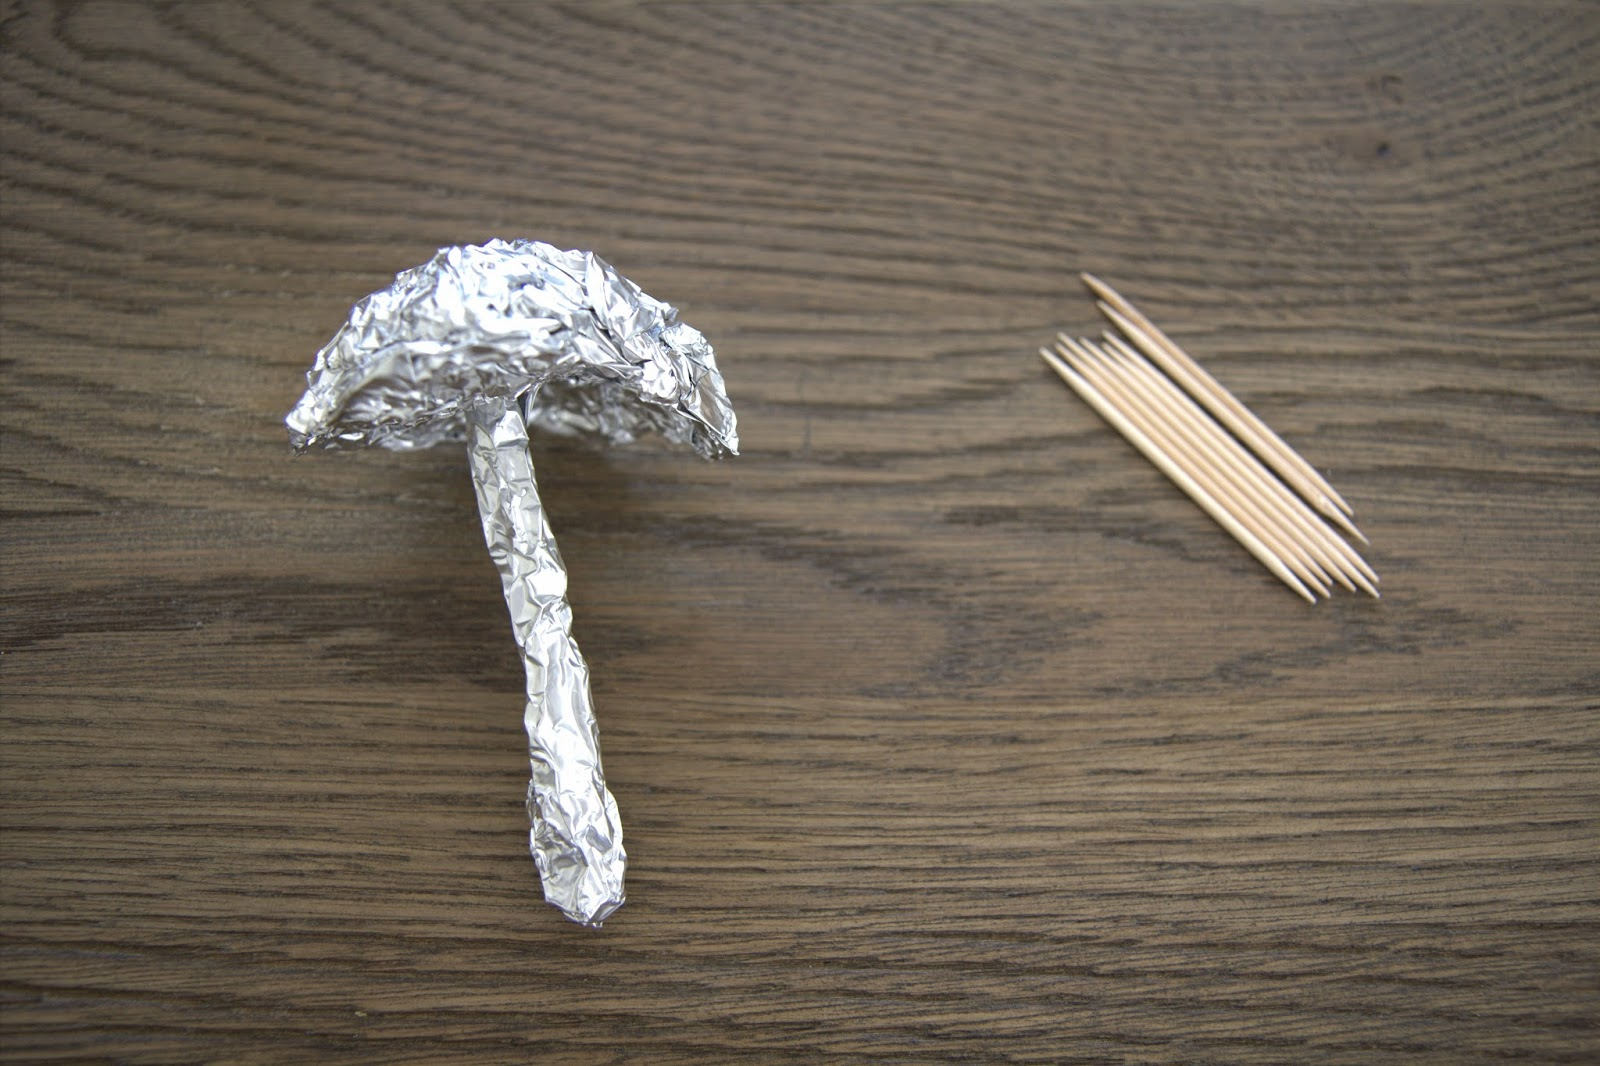 Making Paper Mache Mushrooms - DIY 8